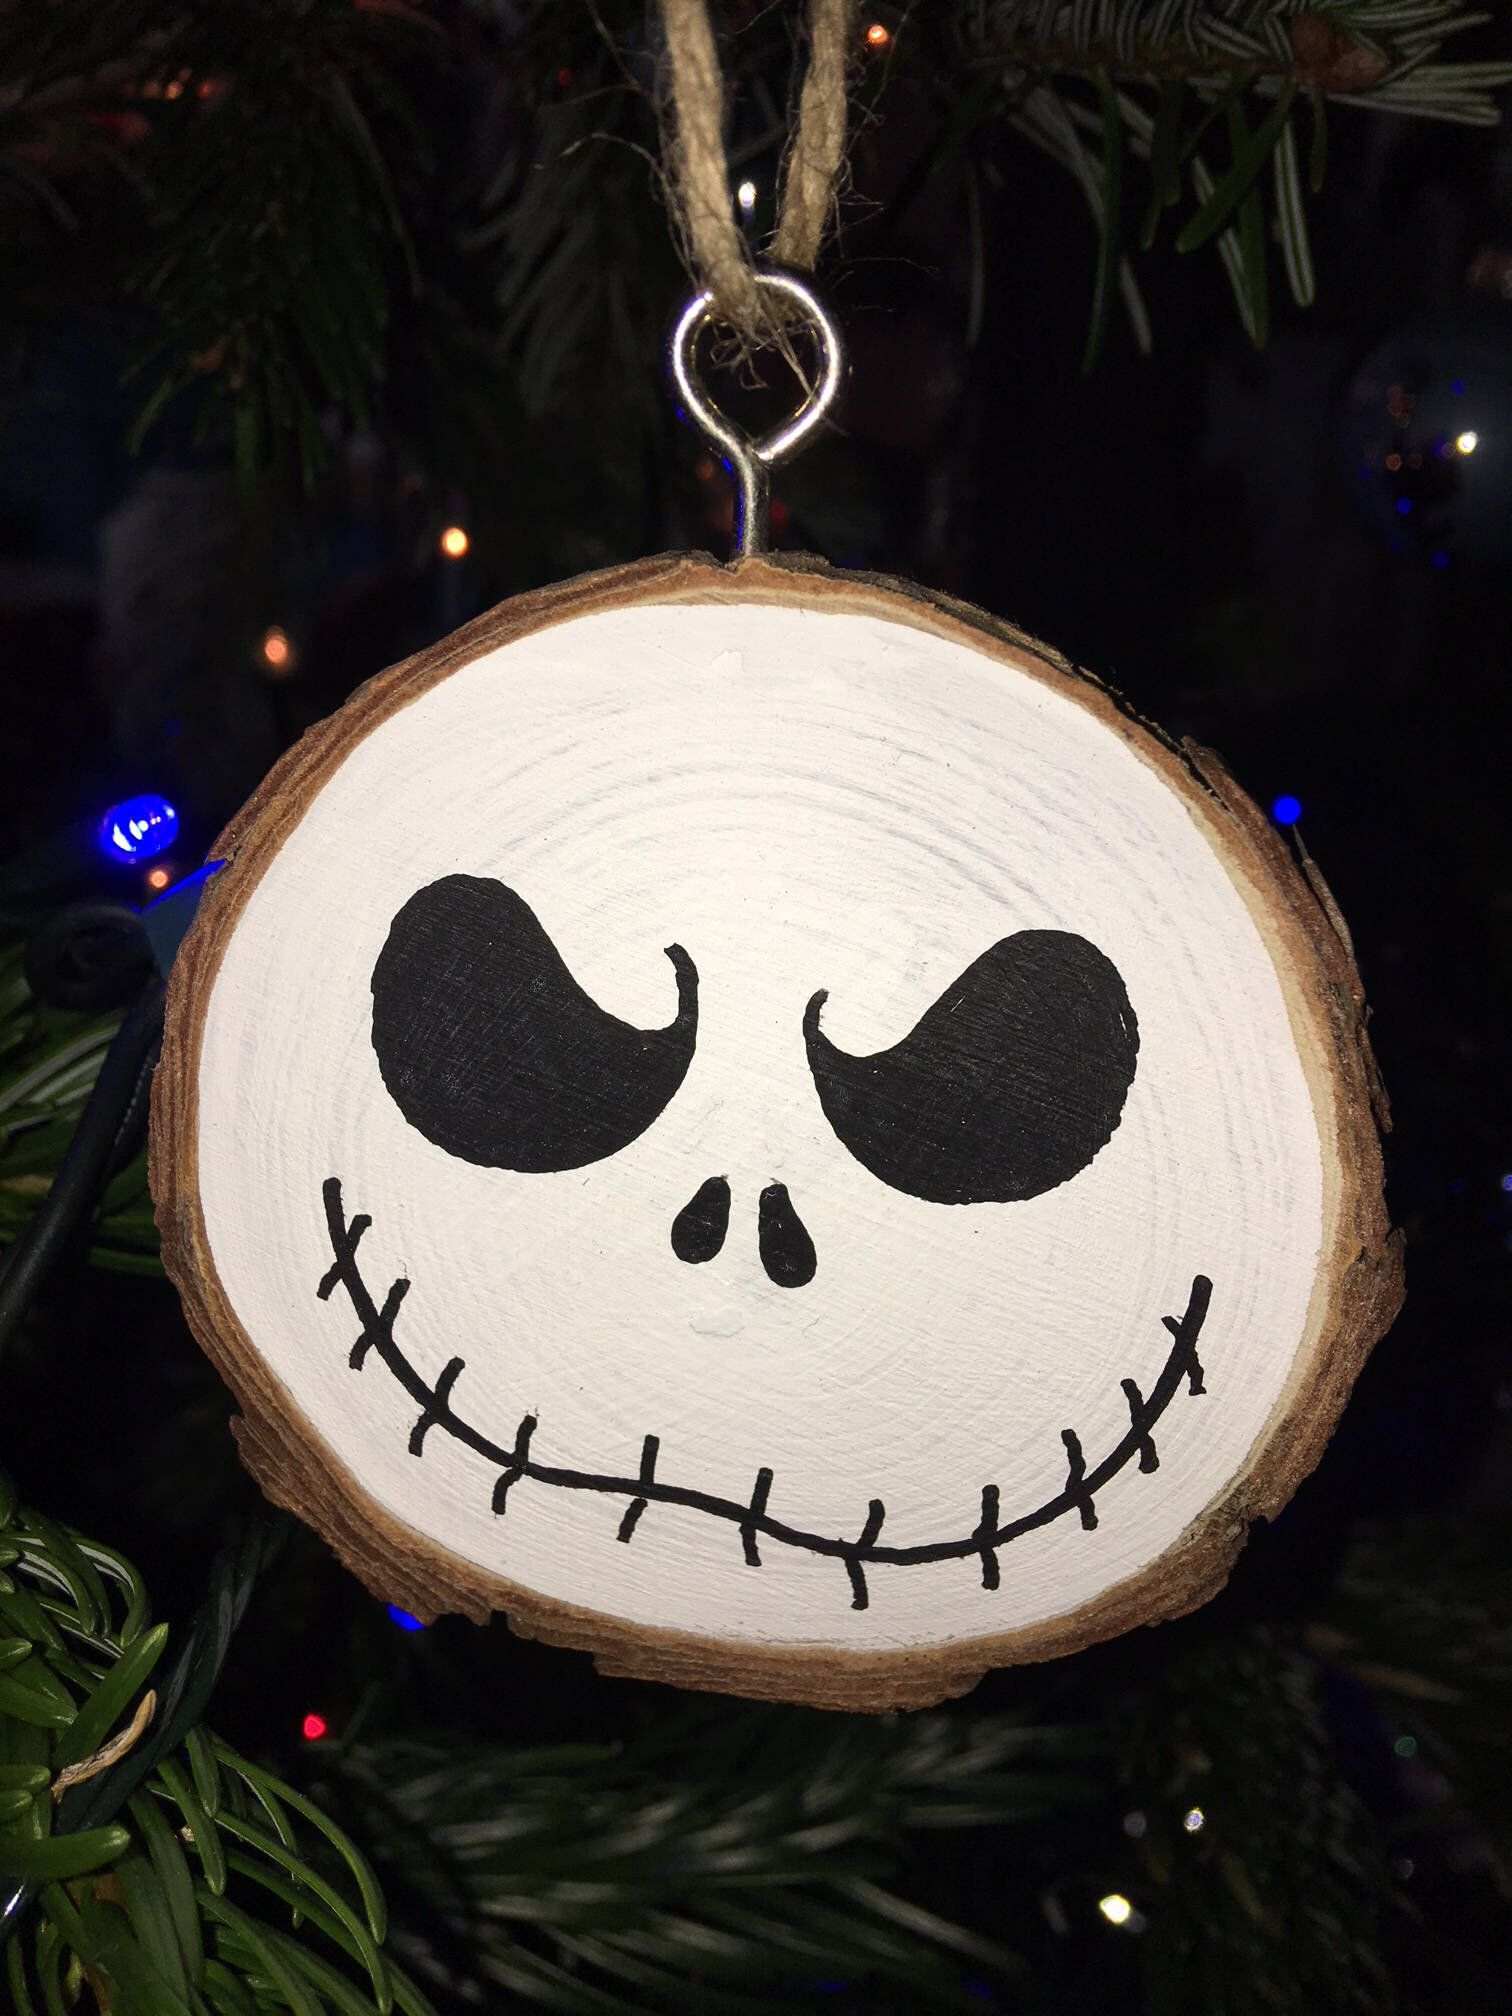 Pin By Checho On My Hanging Christmas Decorations Wood Christmas Ornaments Wooden Christmas Ornaments Painted Christmas Ornaments